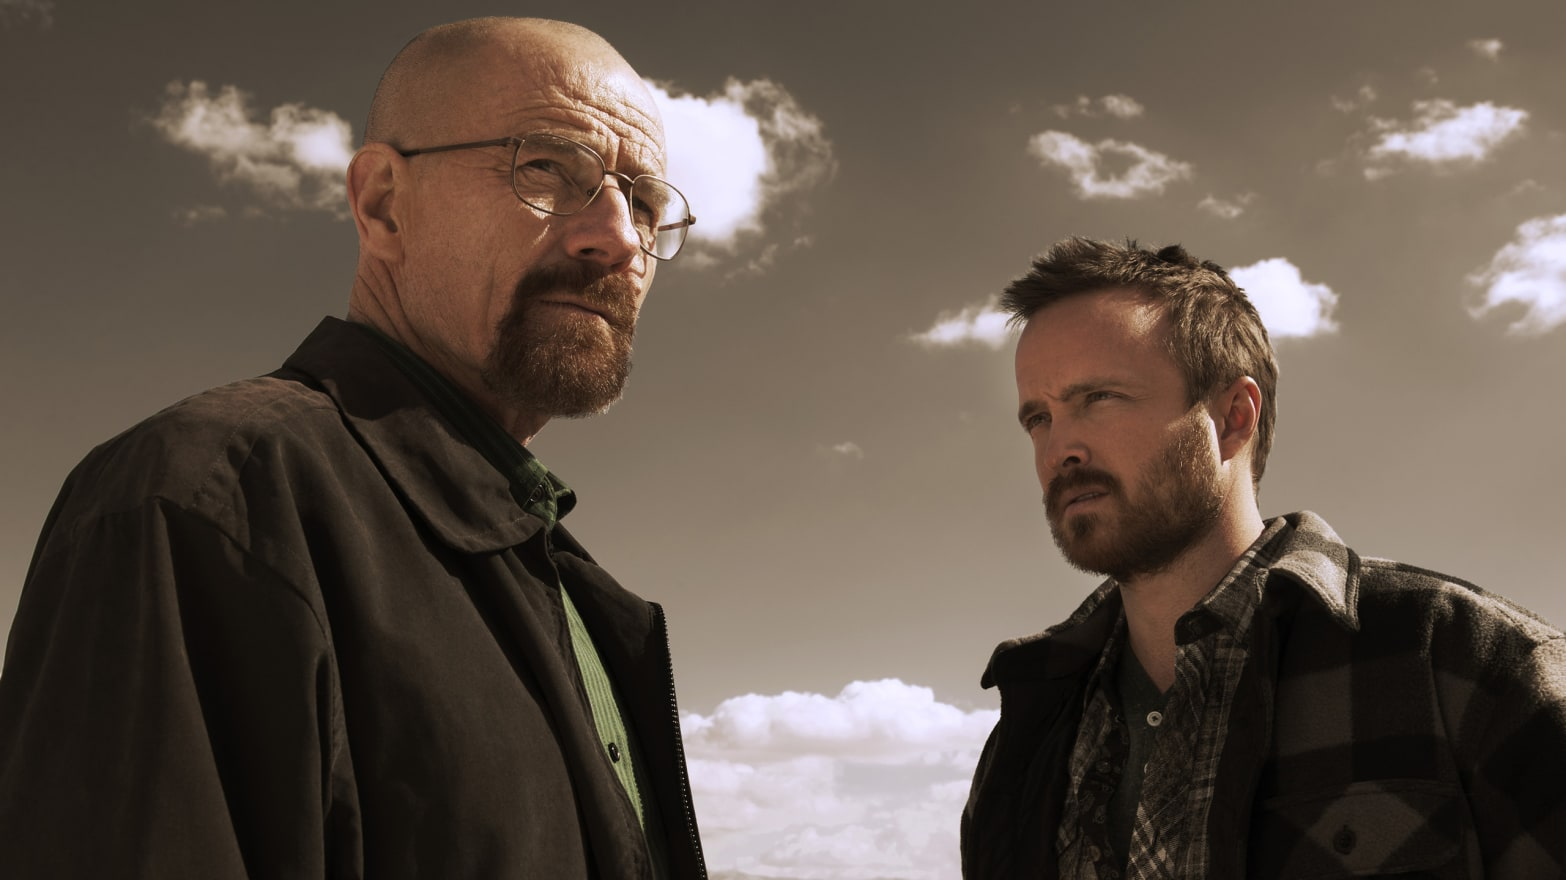 edaa8a03e0f65 Breaking Bad   The 7 Plot Points You Need to Remember for the Final ...